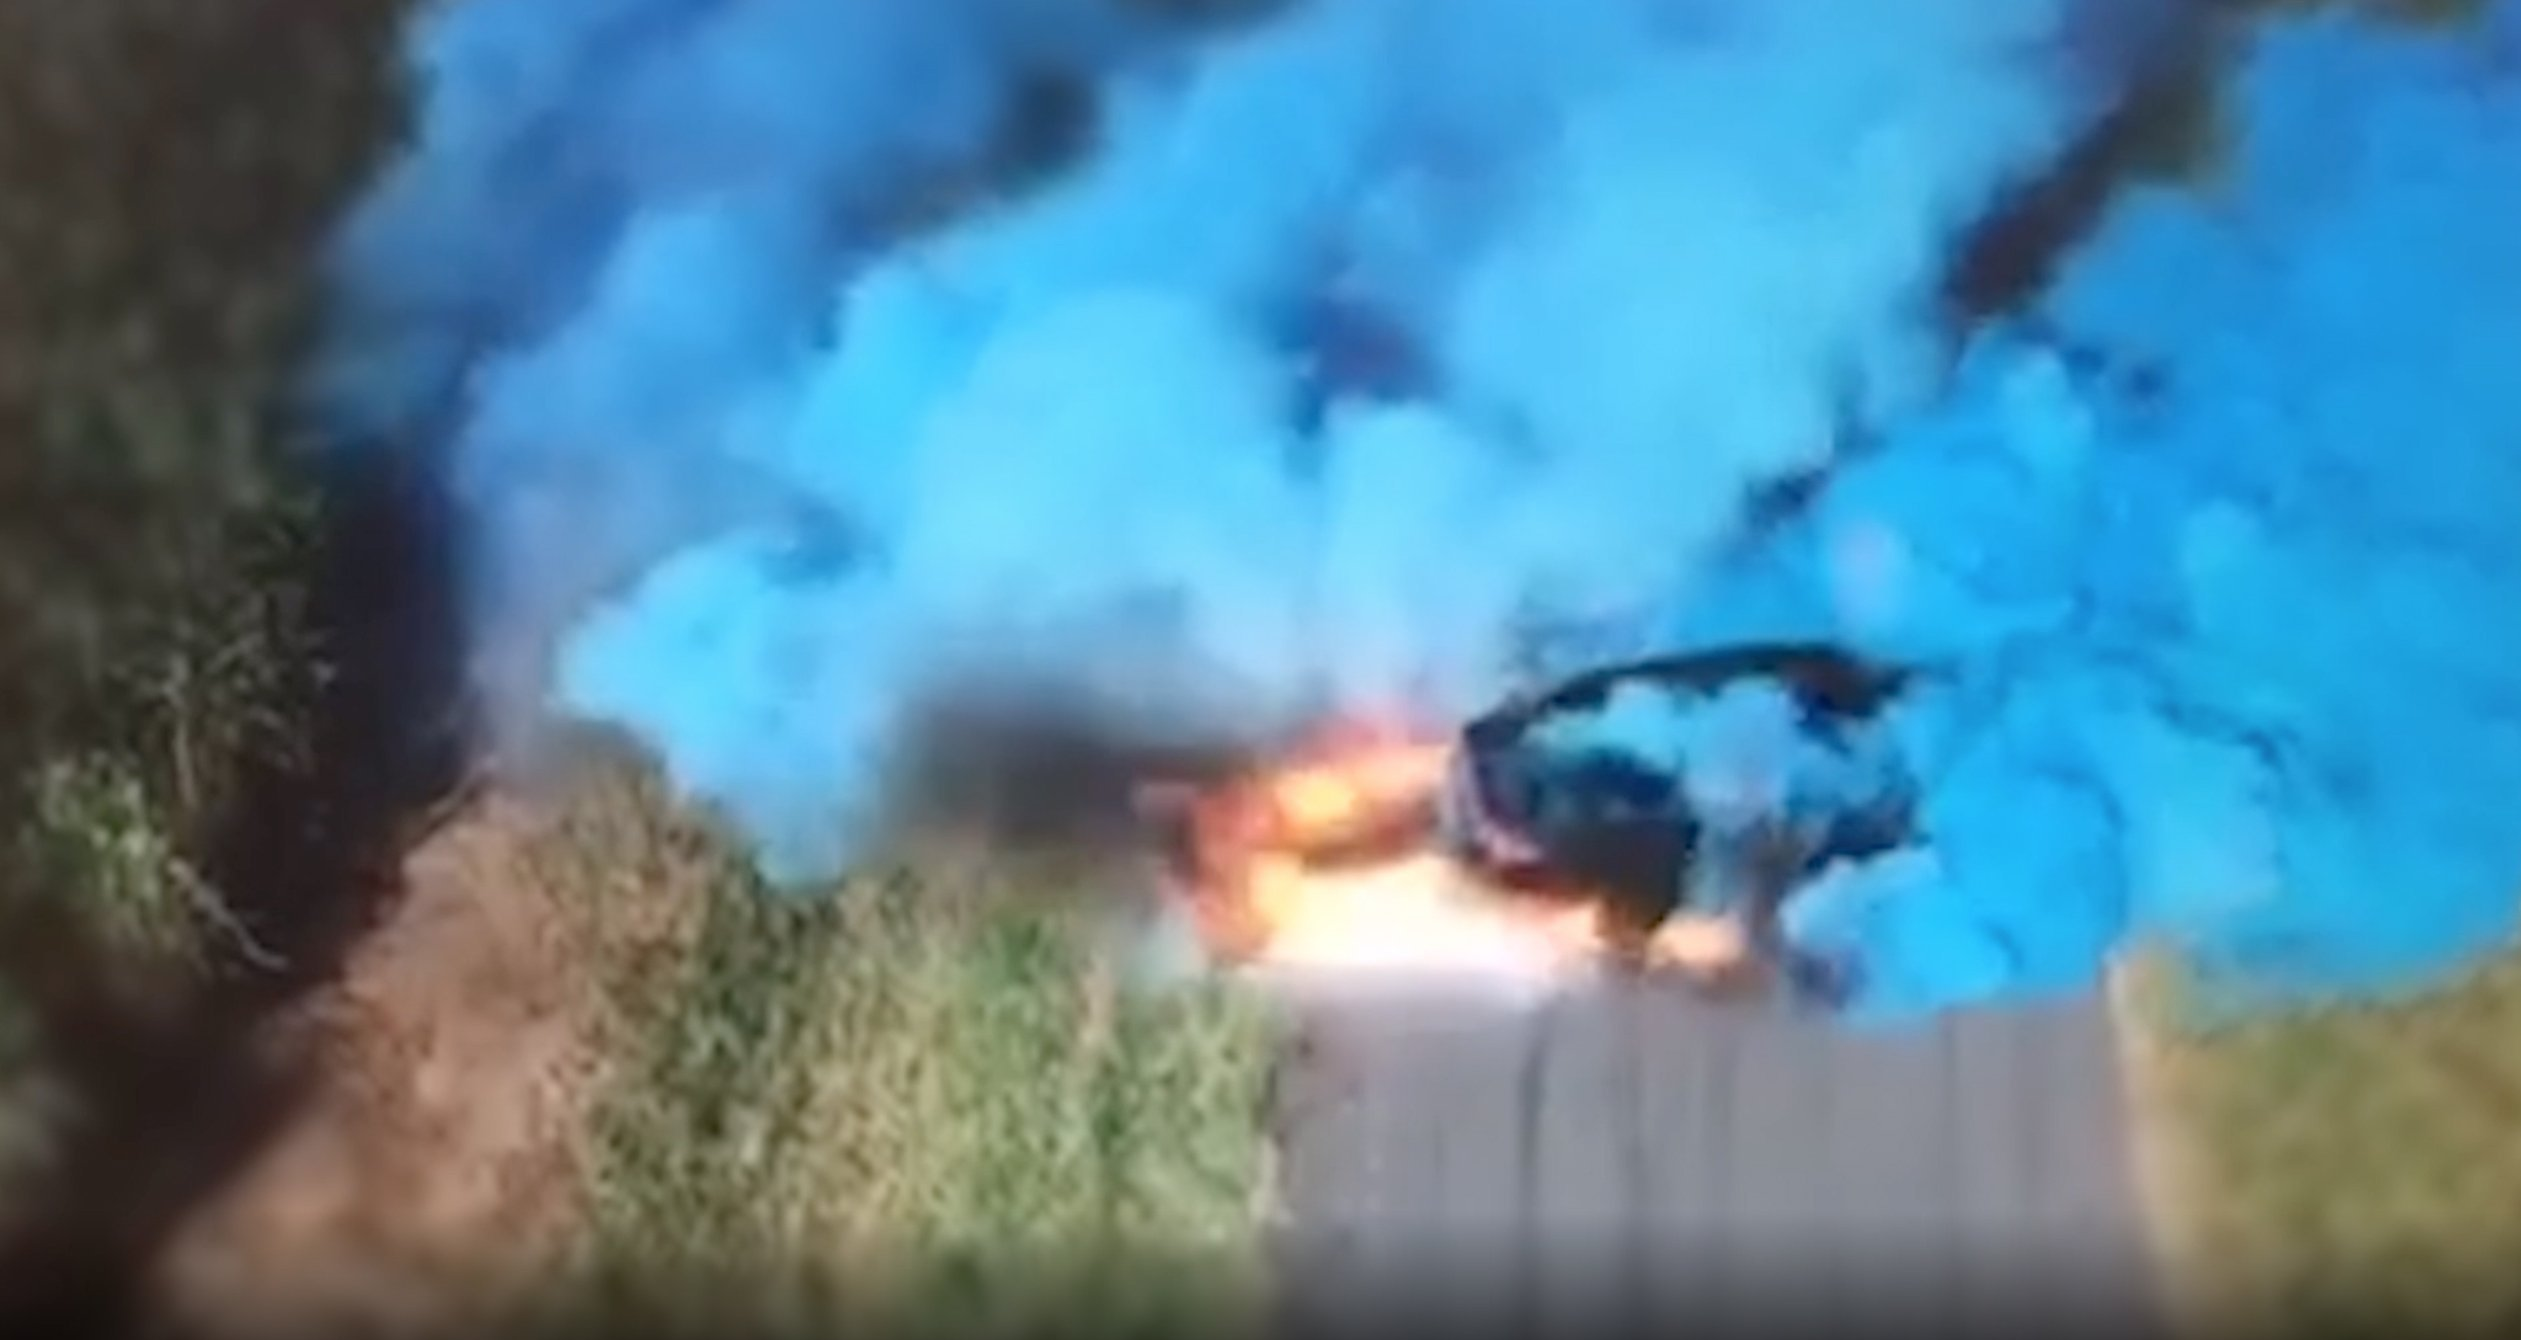 A still from a video released by the Queensland Police Service in July 2019 shows a car emitting blue smoke during a gender reveal party.